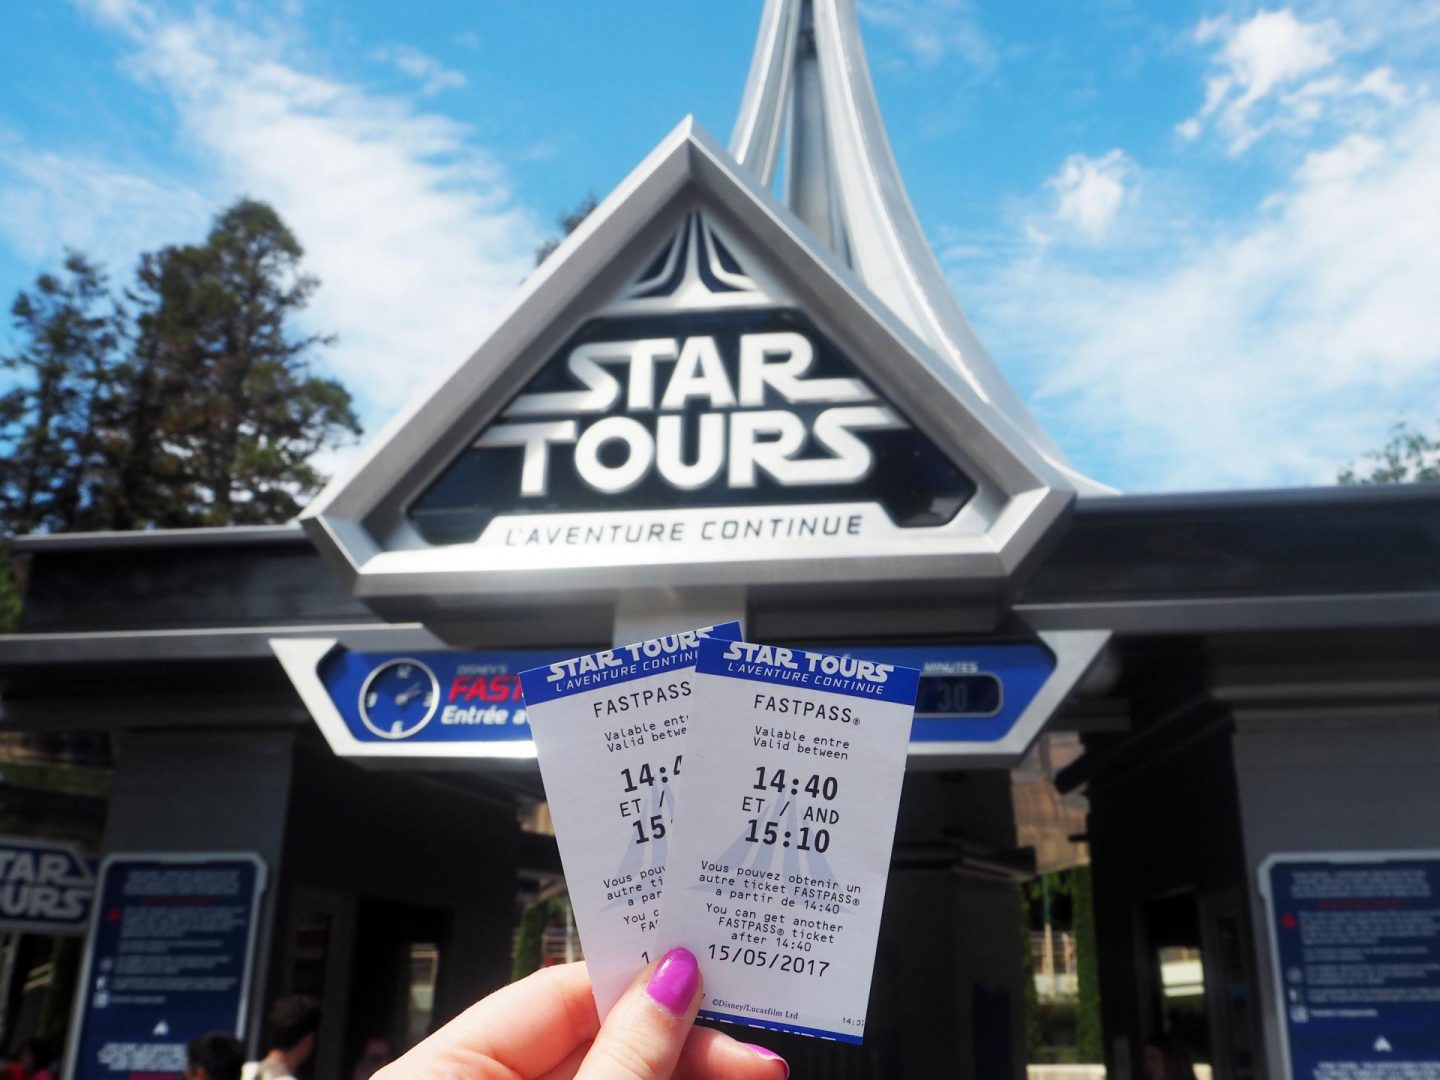 25th Anniversary Celebrations at Disneyland Paris - Star Tours